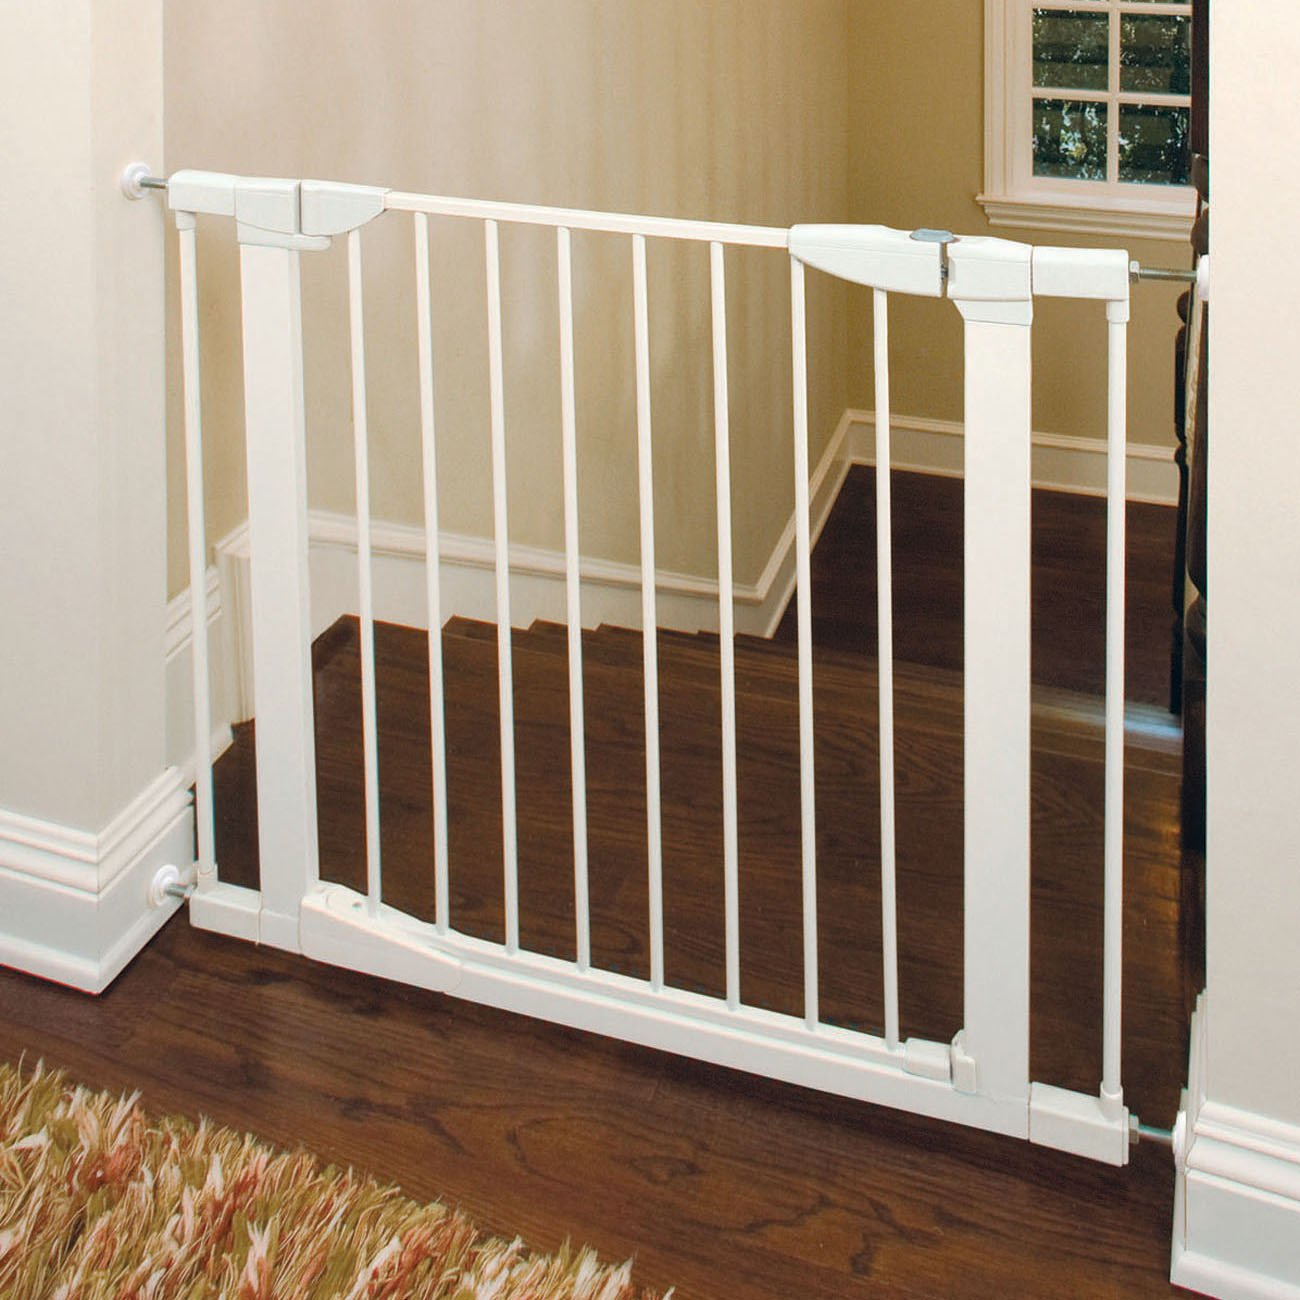 & Amazon.com : Munchkin Auto Close Metal Baby Gate White : Baby